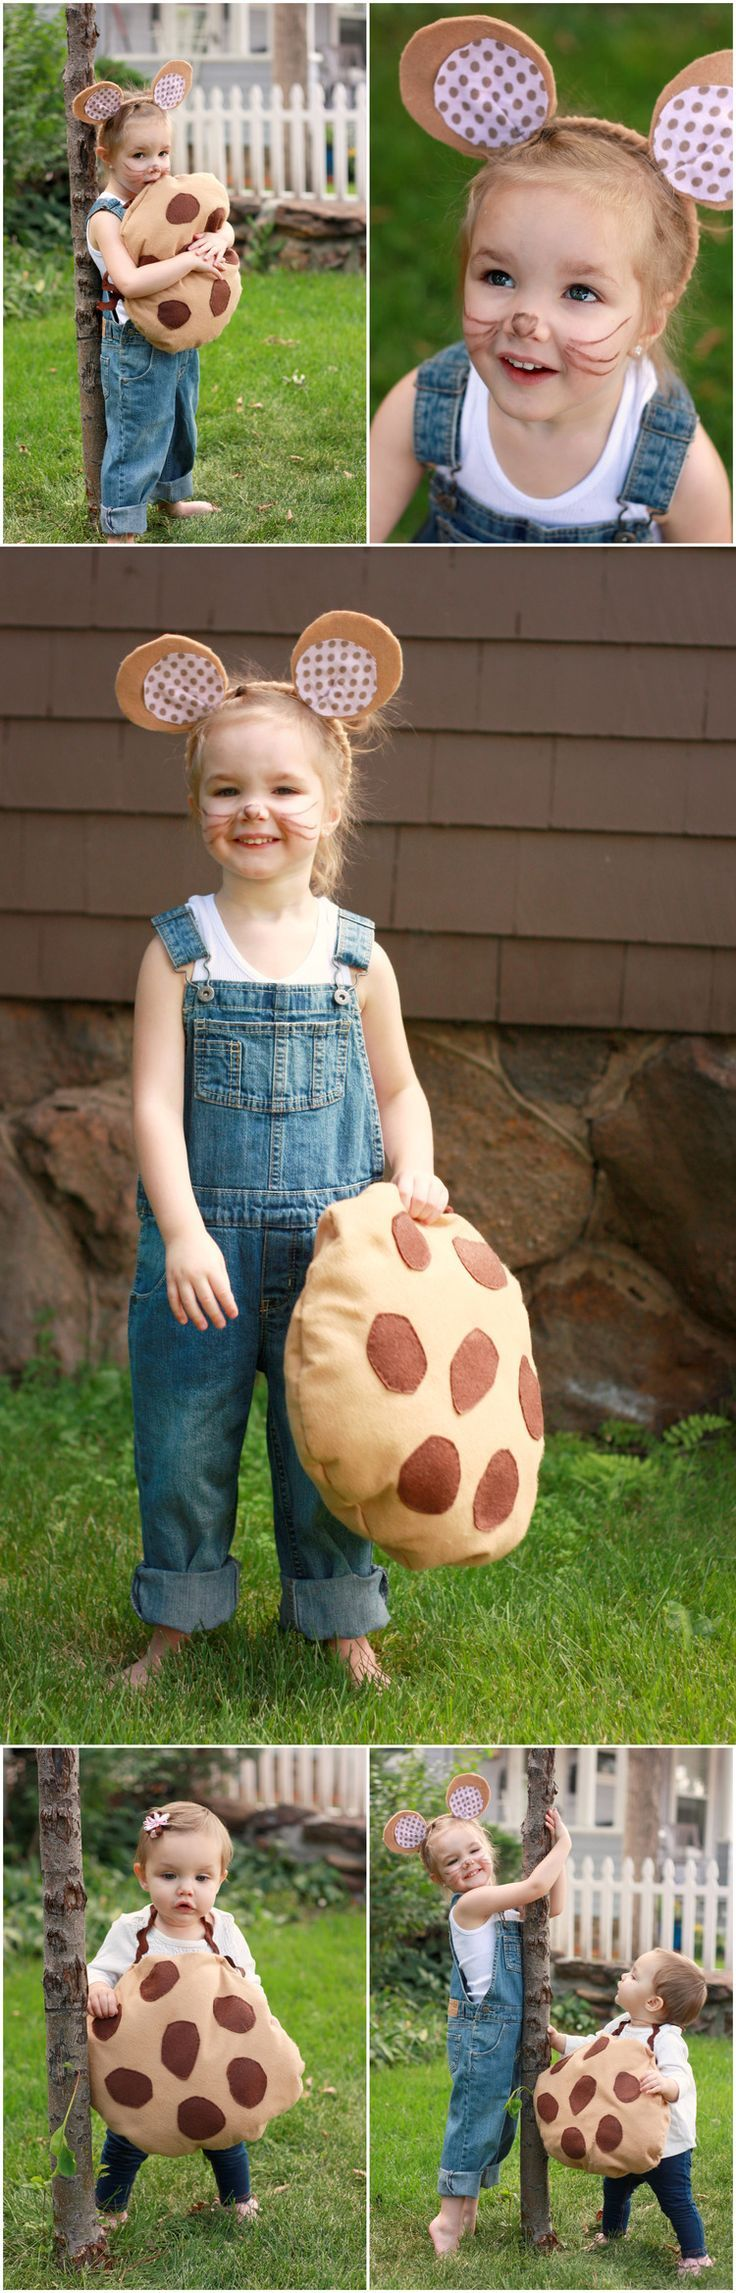 book character halloween costume if you give a mouse a cookie - Halloween Costumes Diy Kids